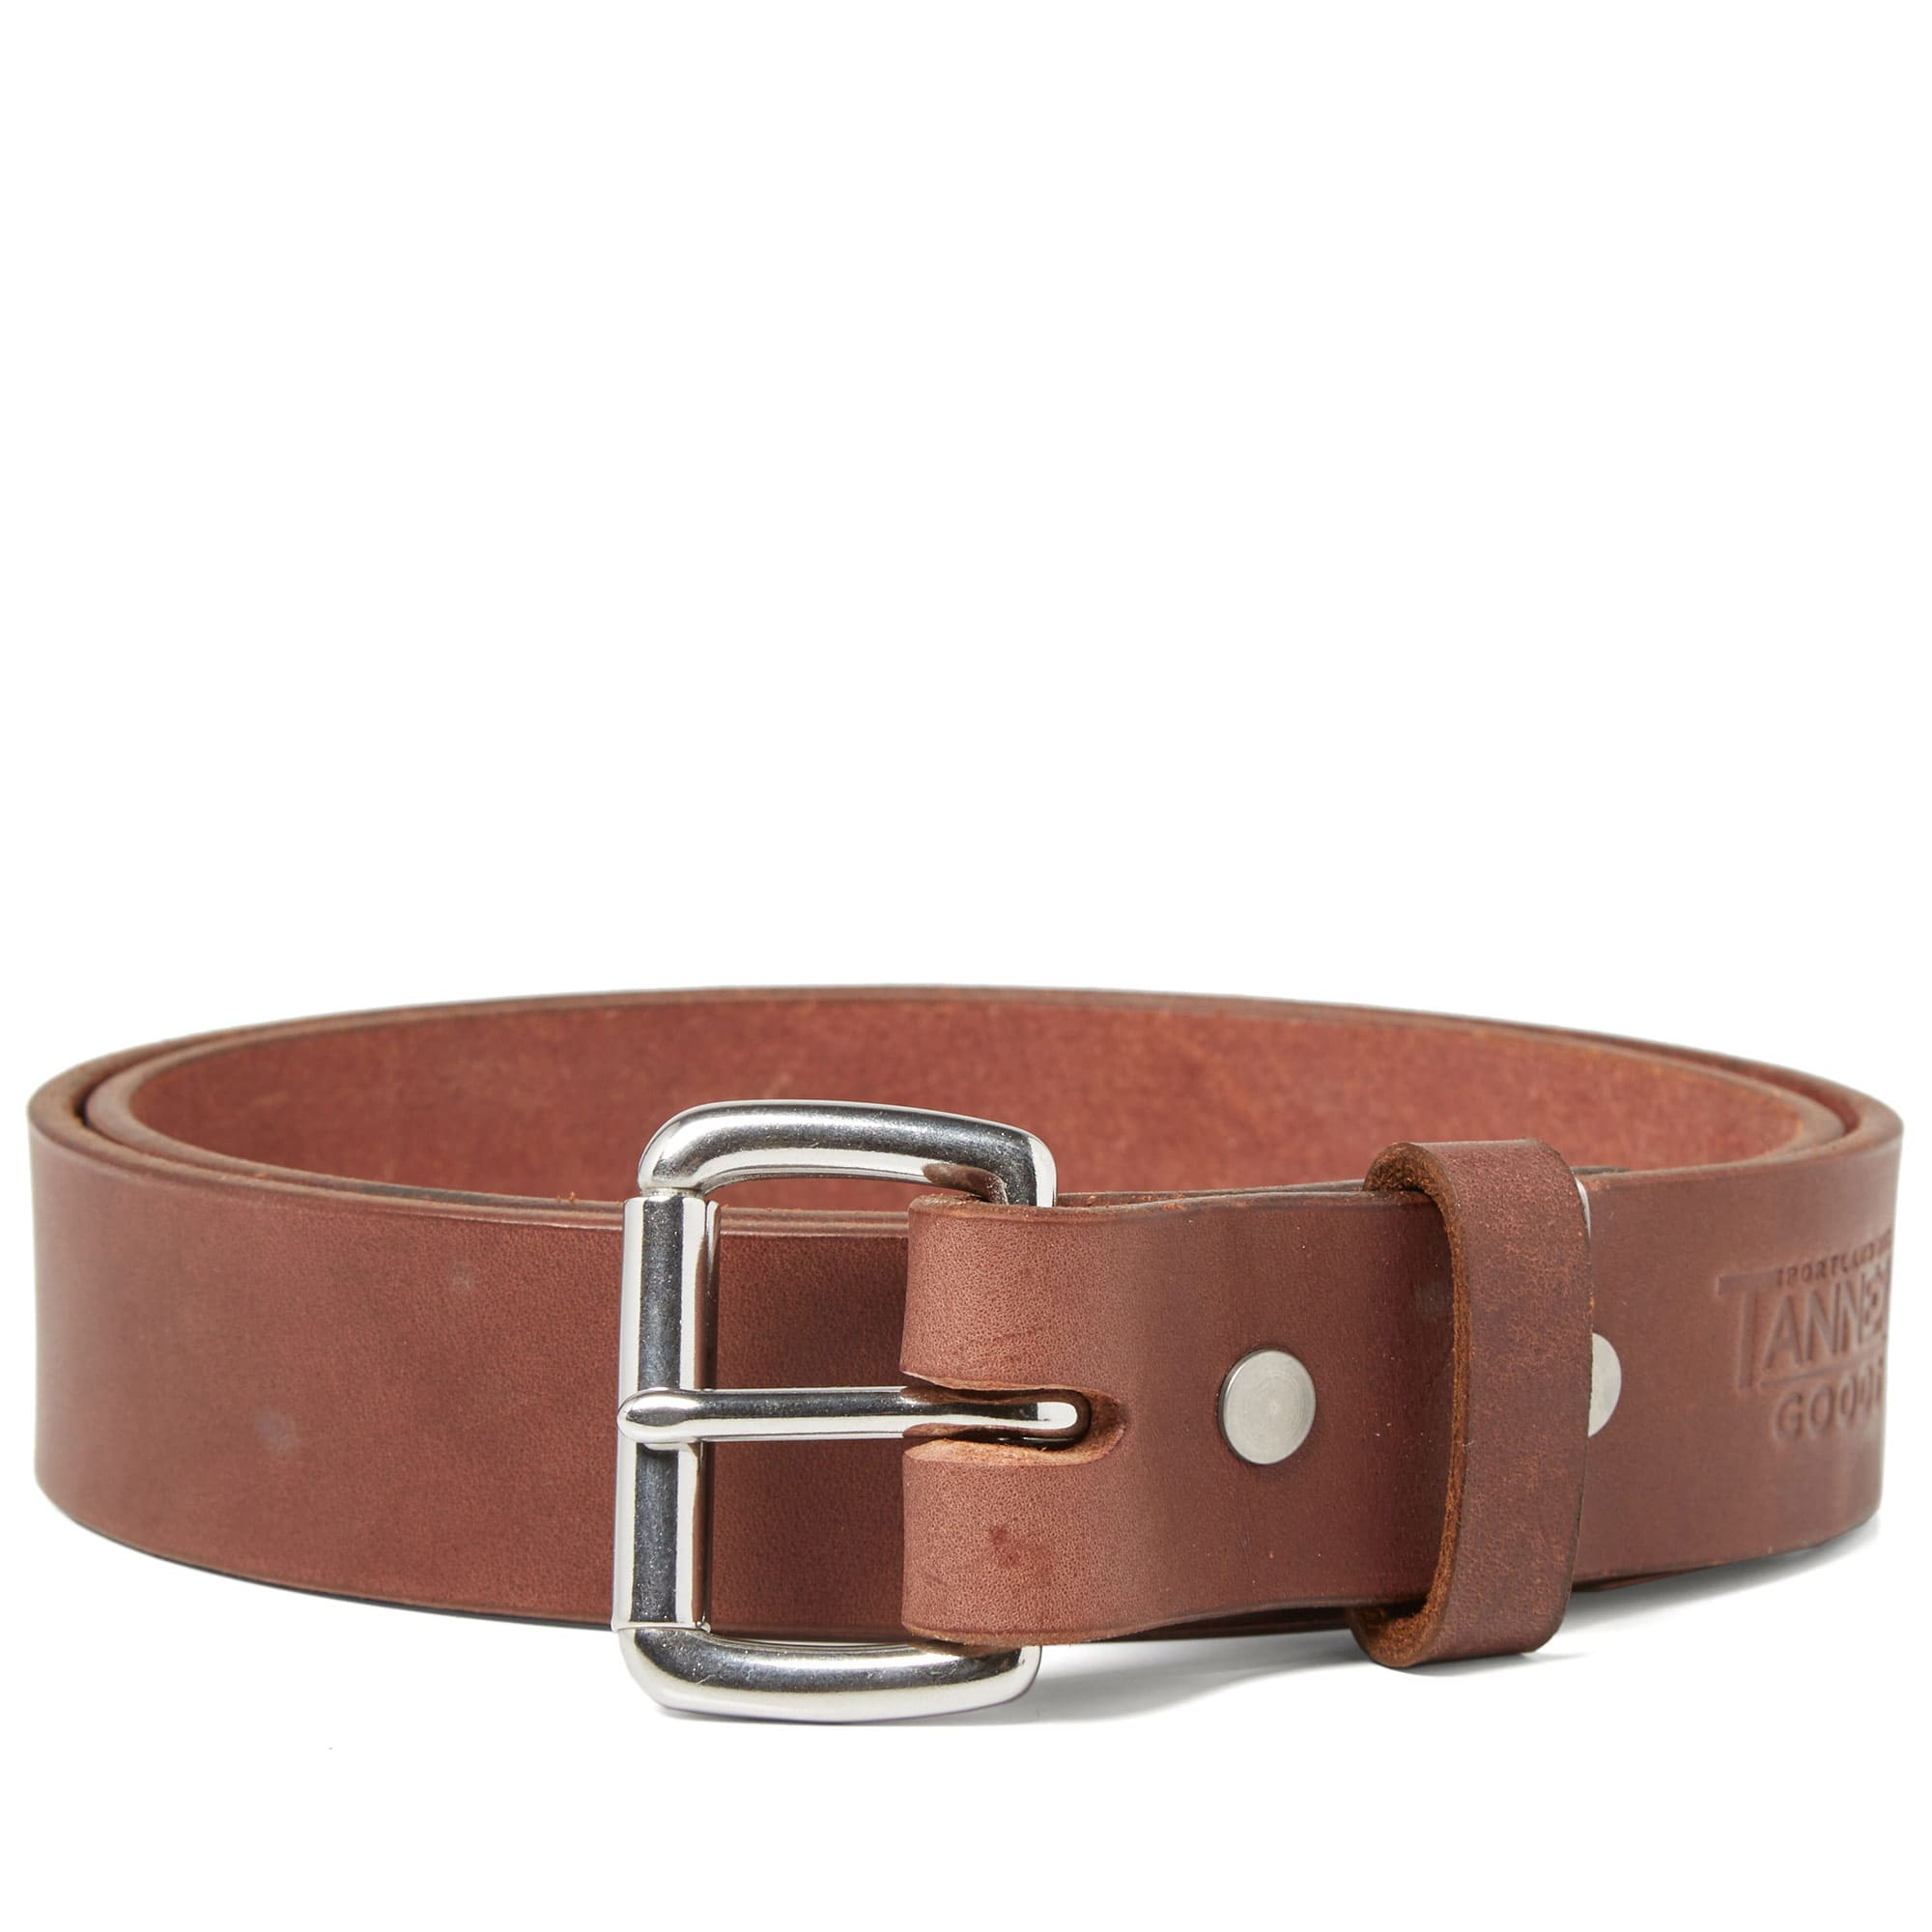 TANNER GOODS Tanner Goods Standard Belt in Brown